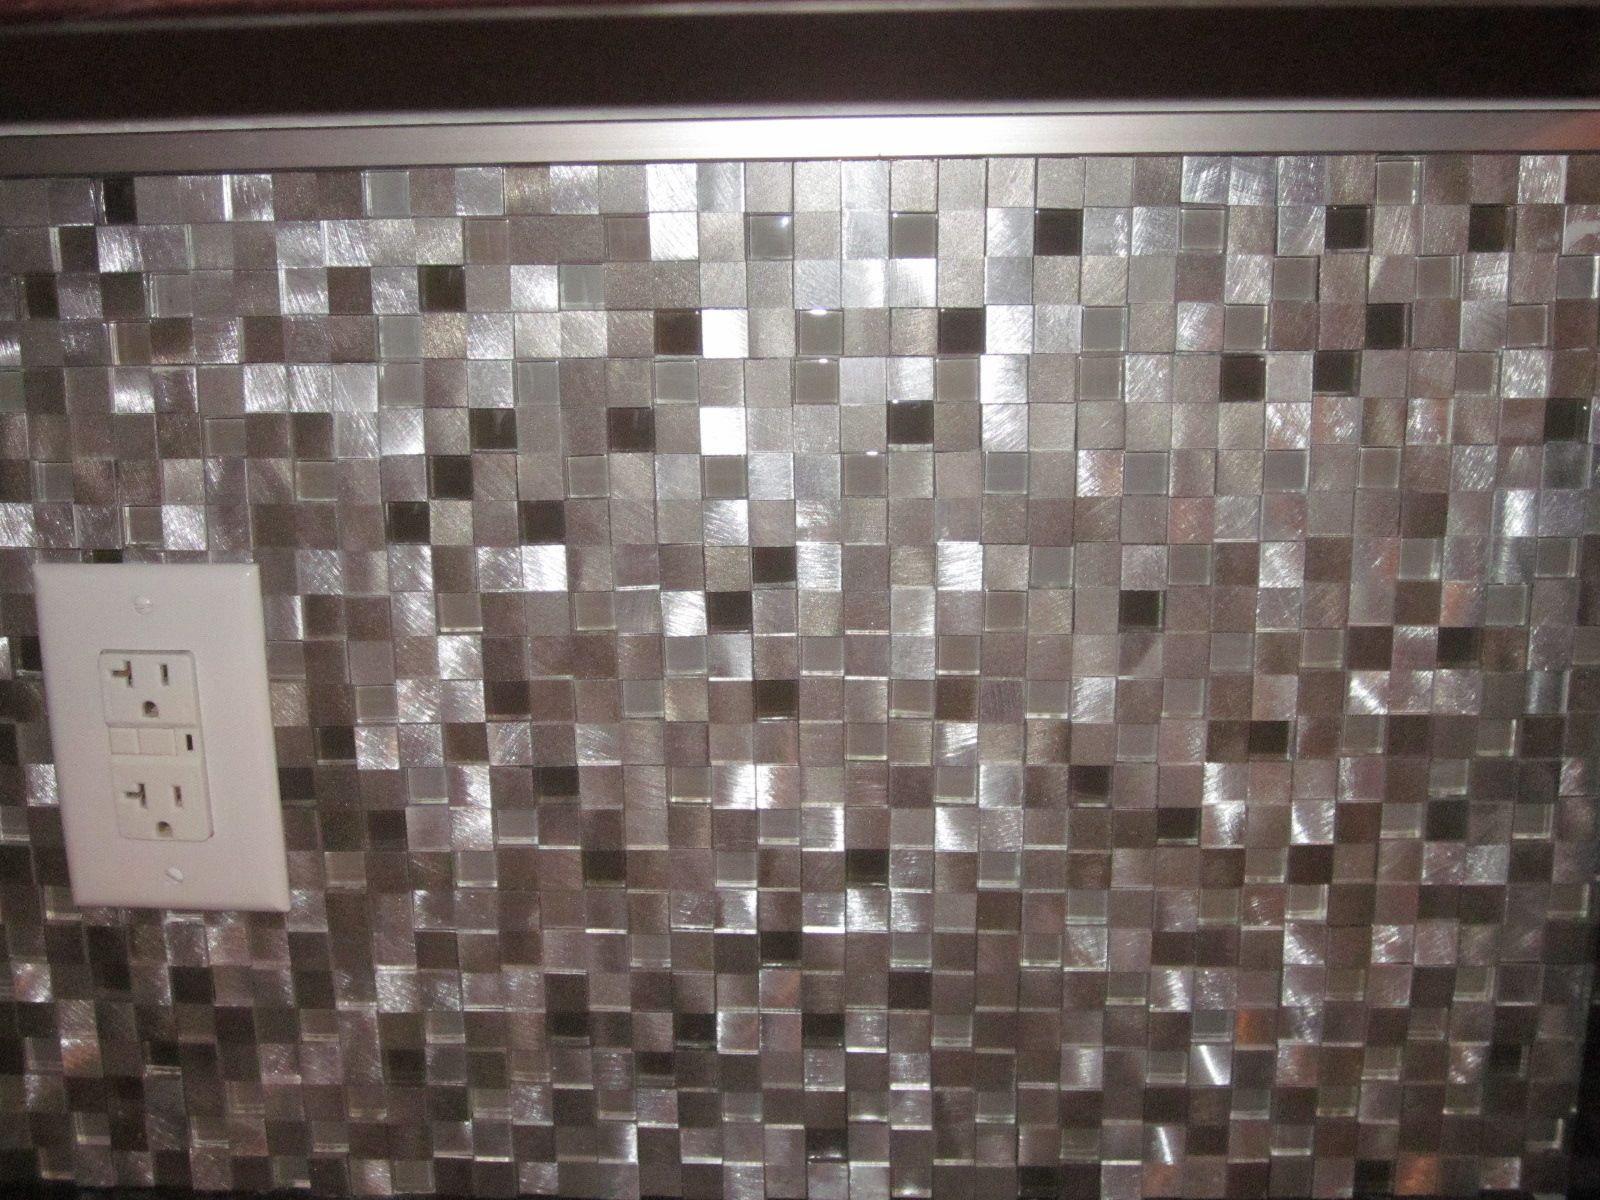 3d silver and pewter aluminum square mosaic tile emtalc3d mix 3d silver and pewter aluminum square mosaic tile emtalc3d mix cb dailygadgetfo Gallery